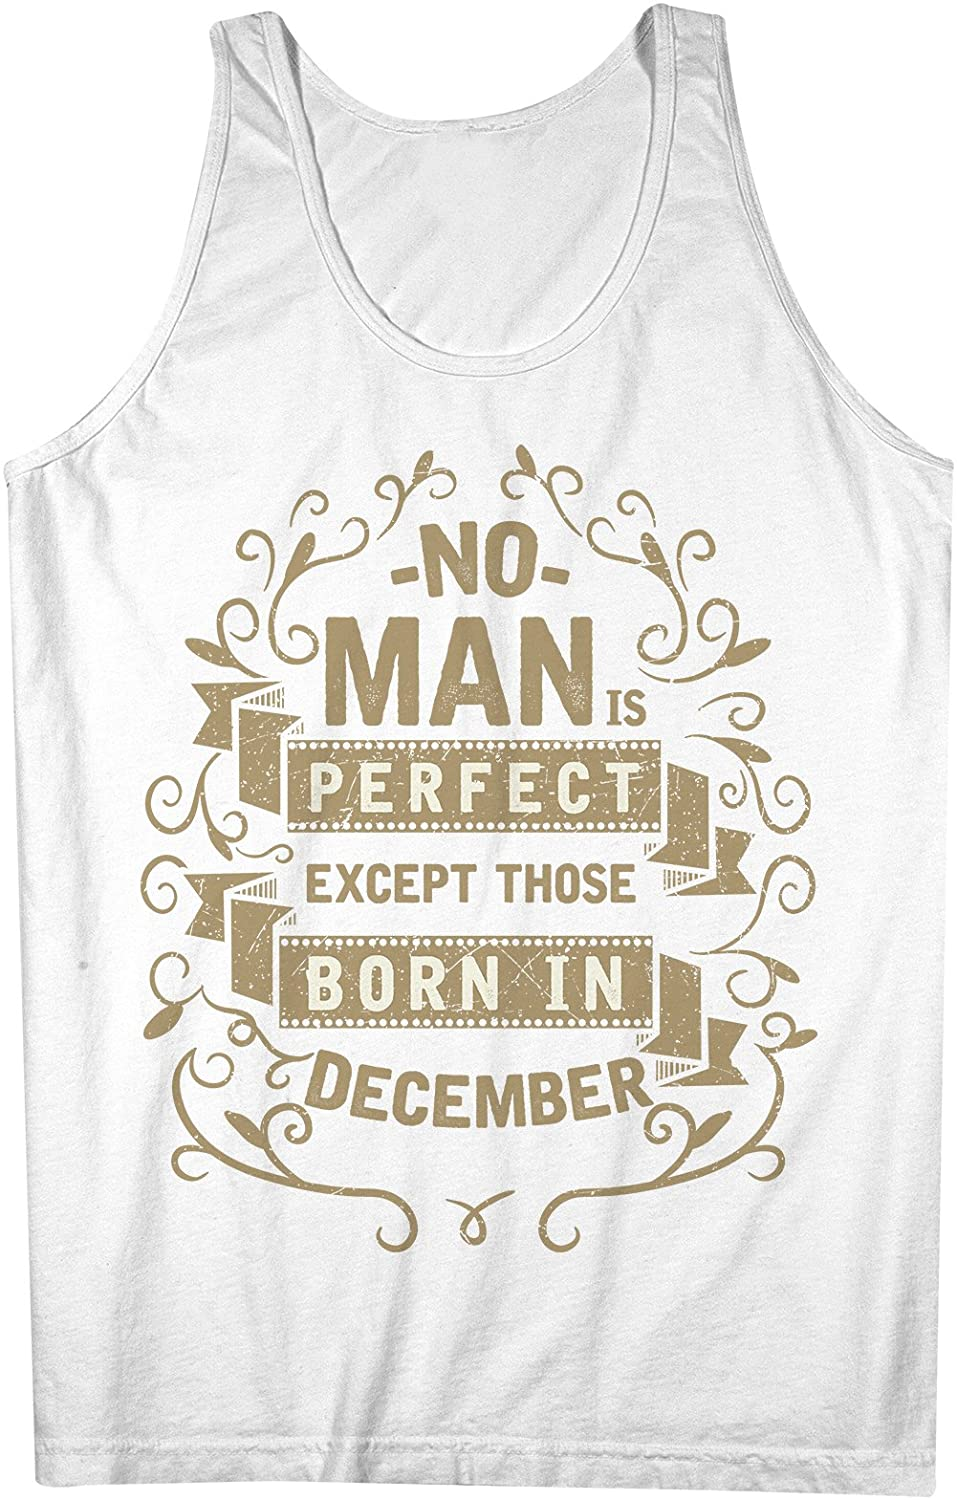 No Man Is Perfect Except Those Born In December お誕生日 男性用 Tank Top Sleeveless Shirt